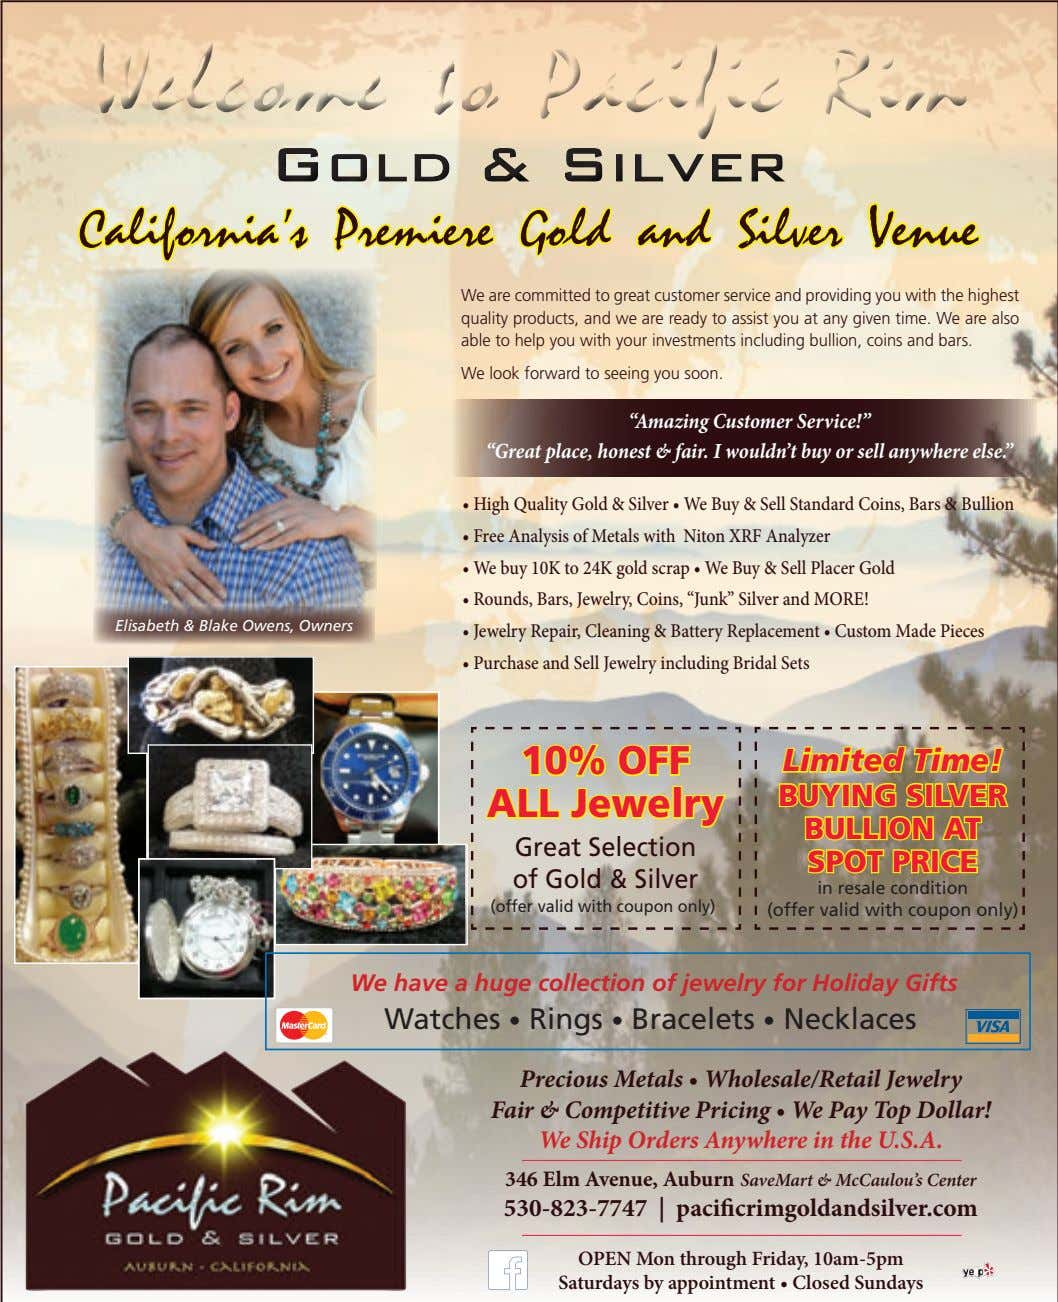 California's Premiere Gold and Silver Venue We are committed to great customer service and providing you